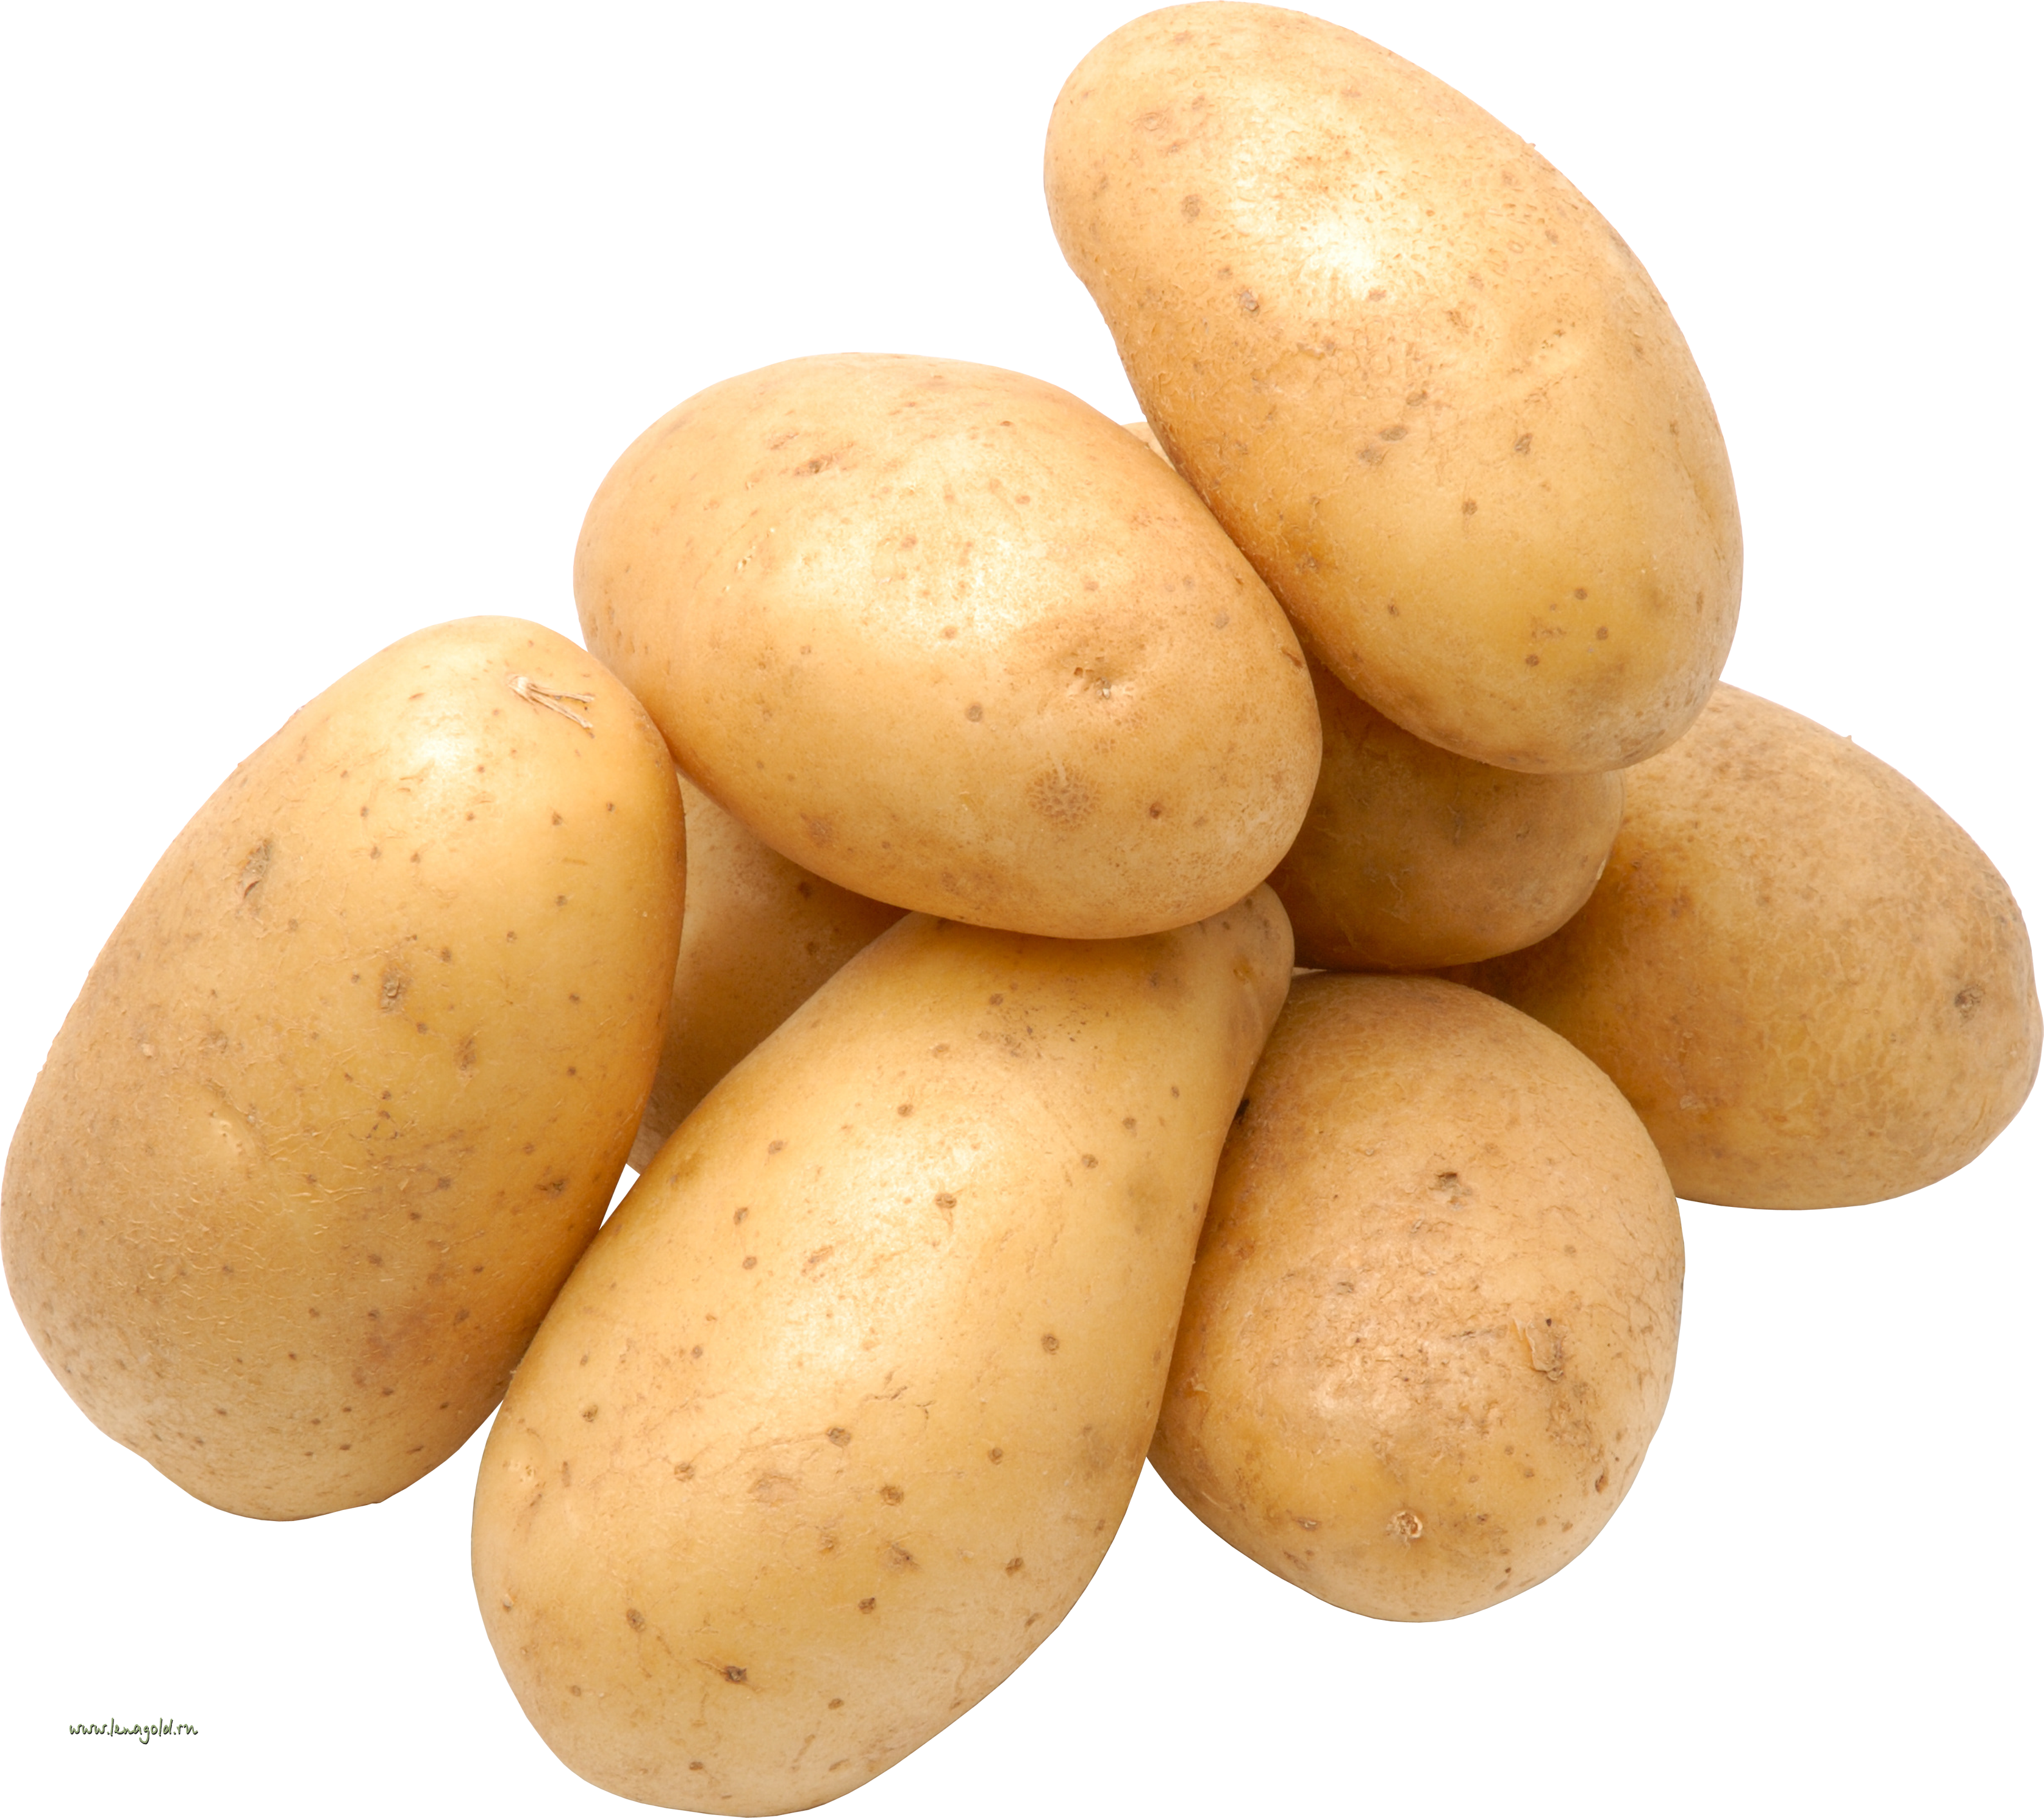 potato PNG image, free picture.